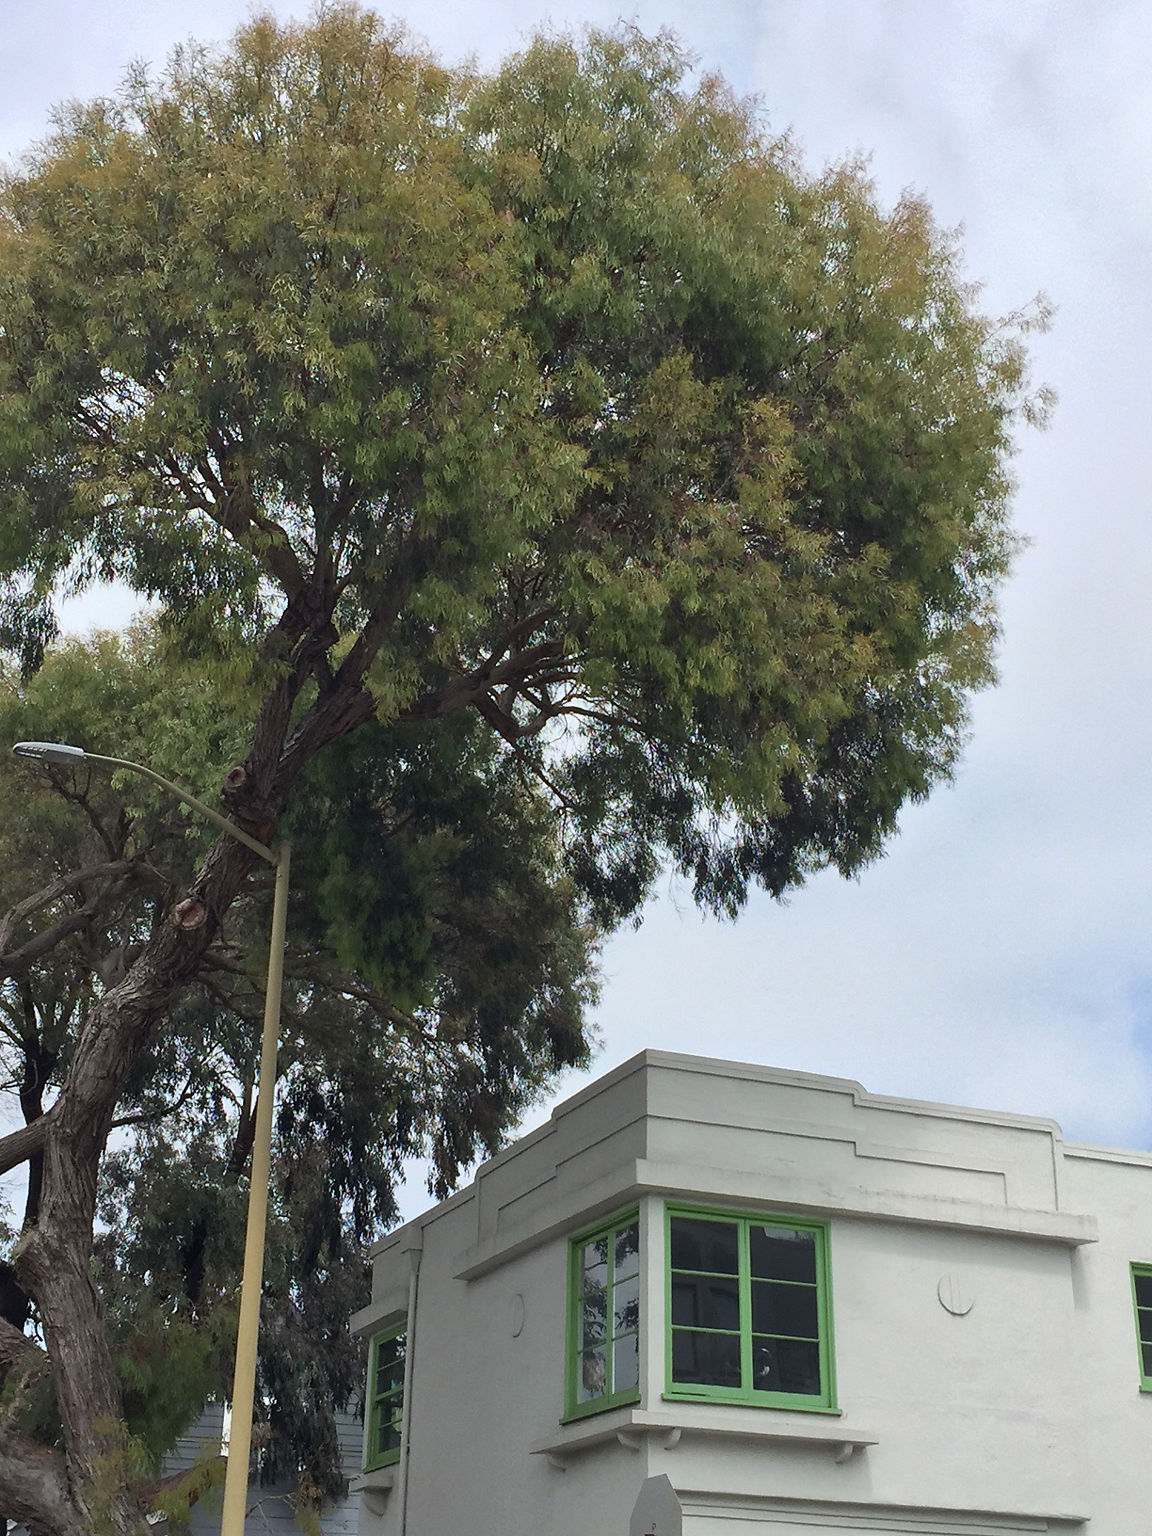 Tree_branch_leaning_on_light_pole_and_above_roof